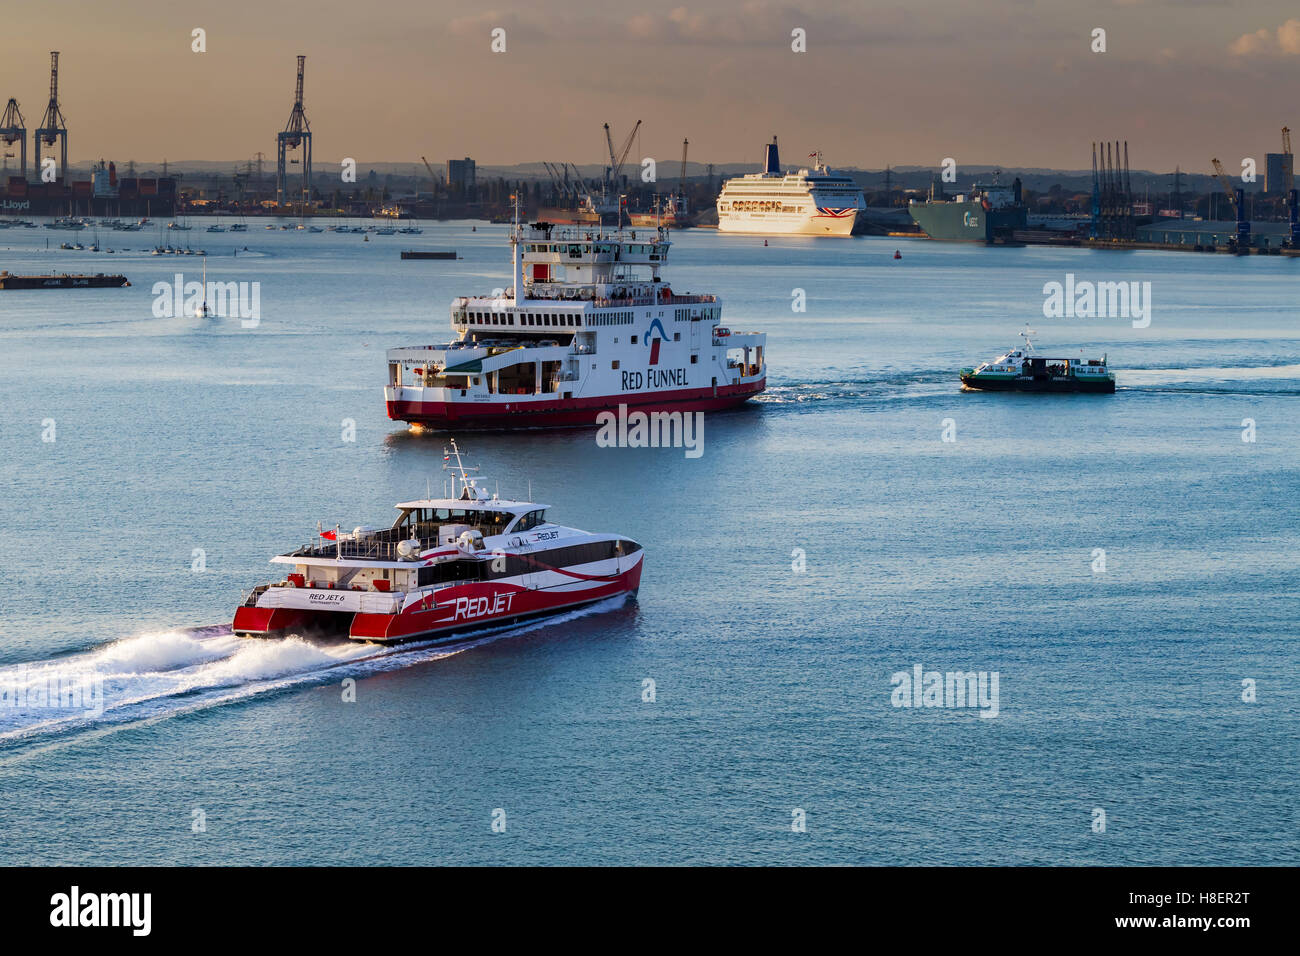 RedJet arriving and Red Funnel Ferries leaving Southampton, u.k. - Stock Image